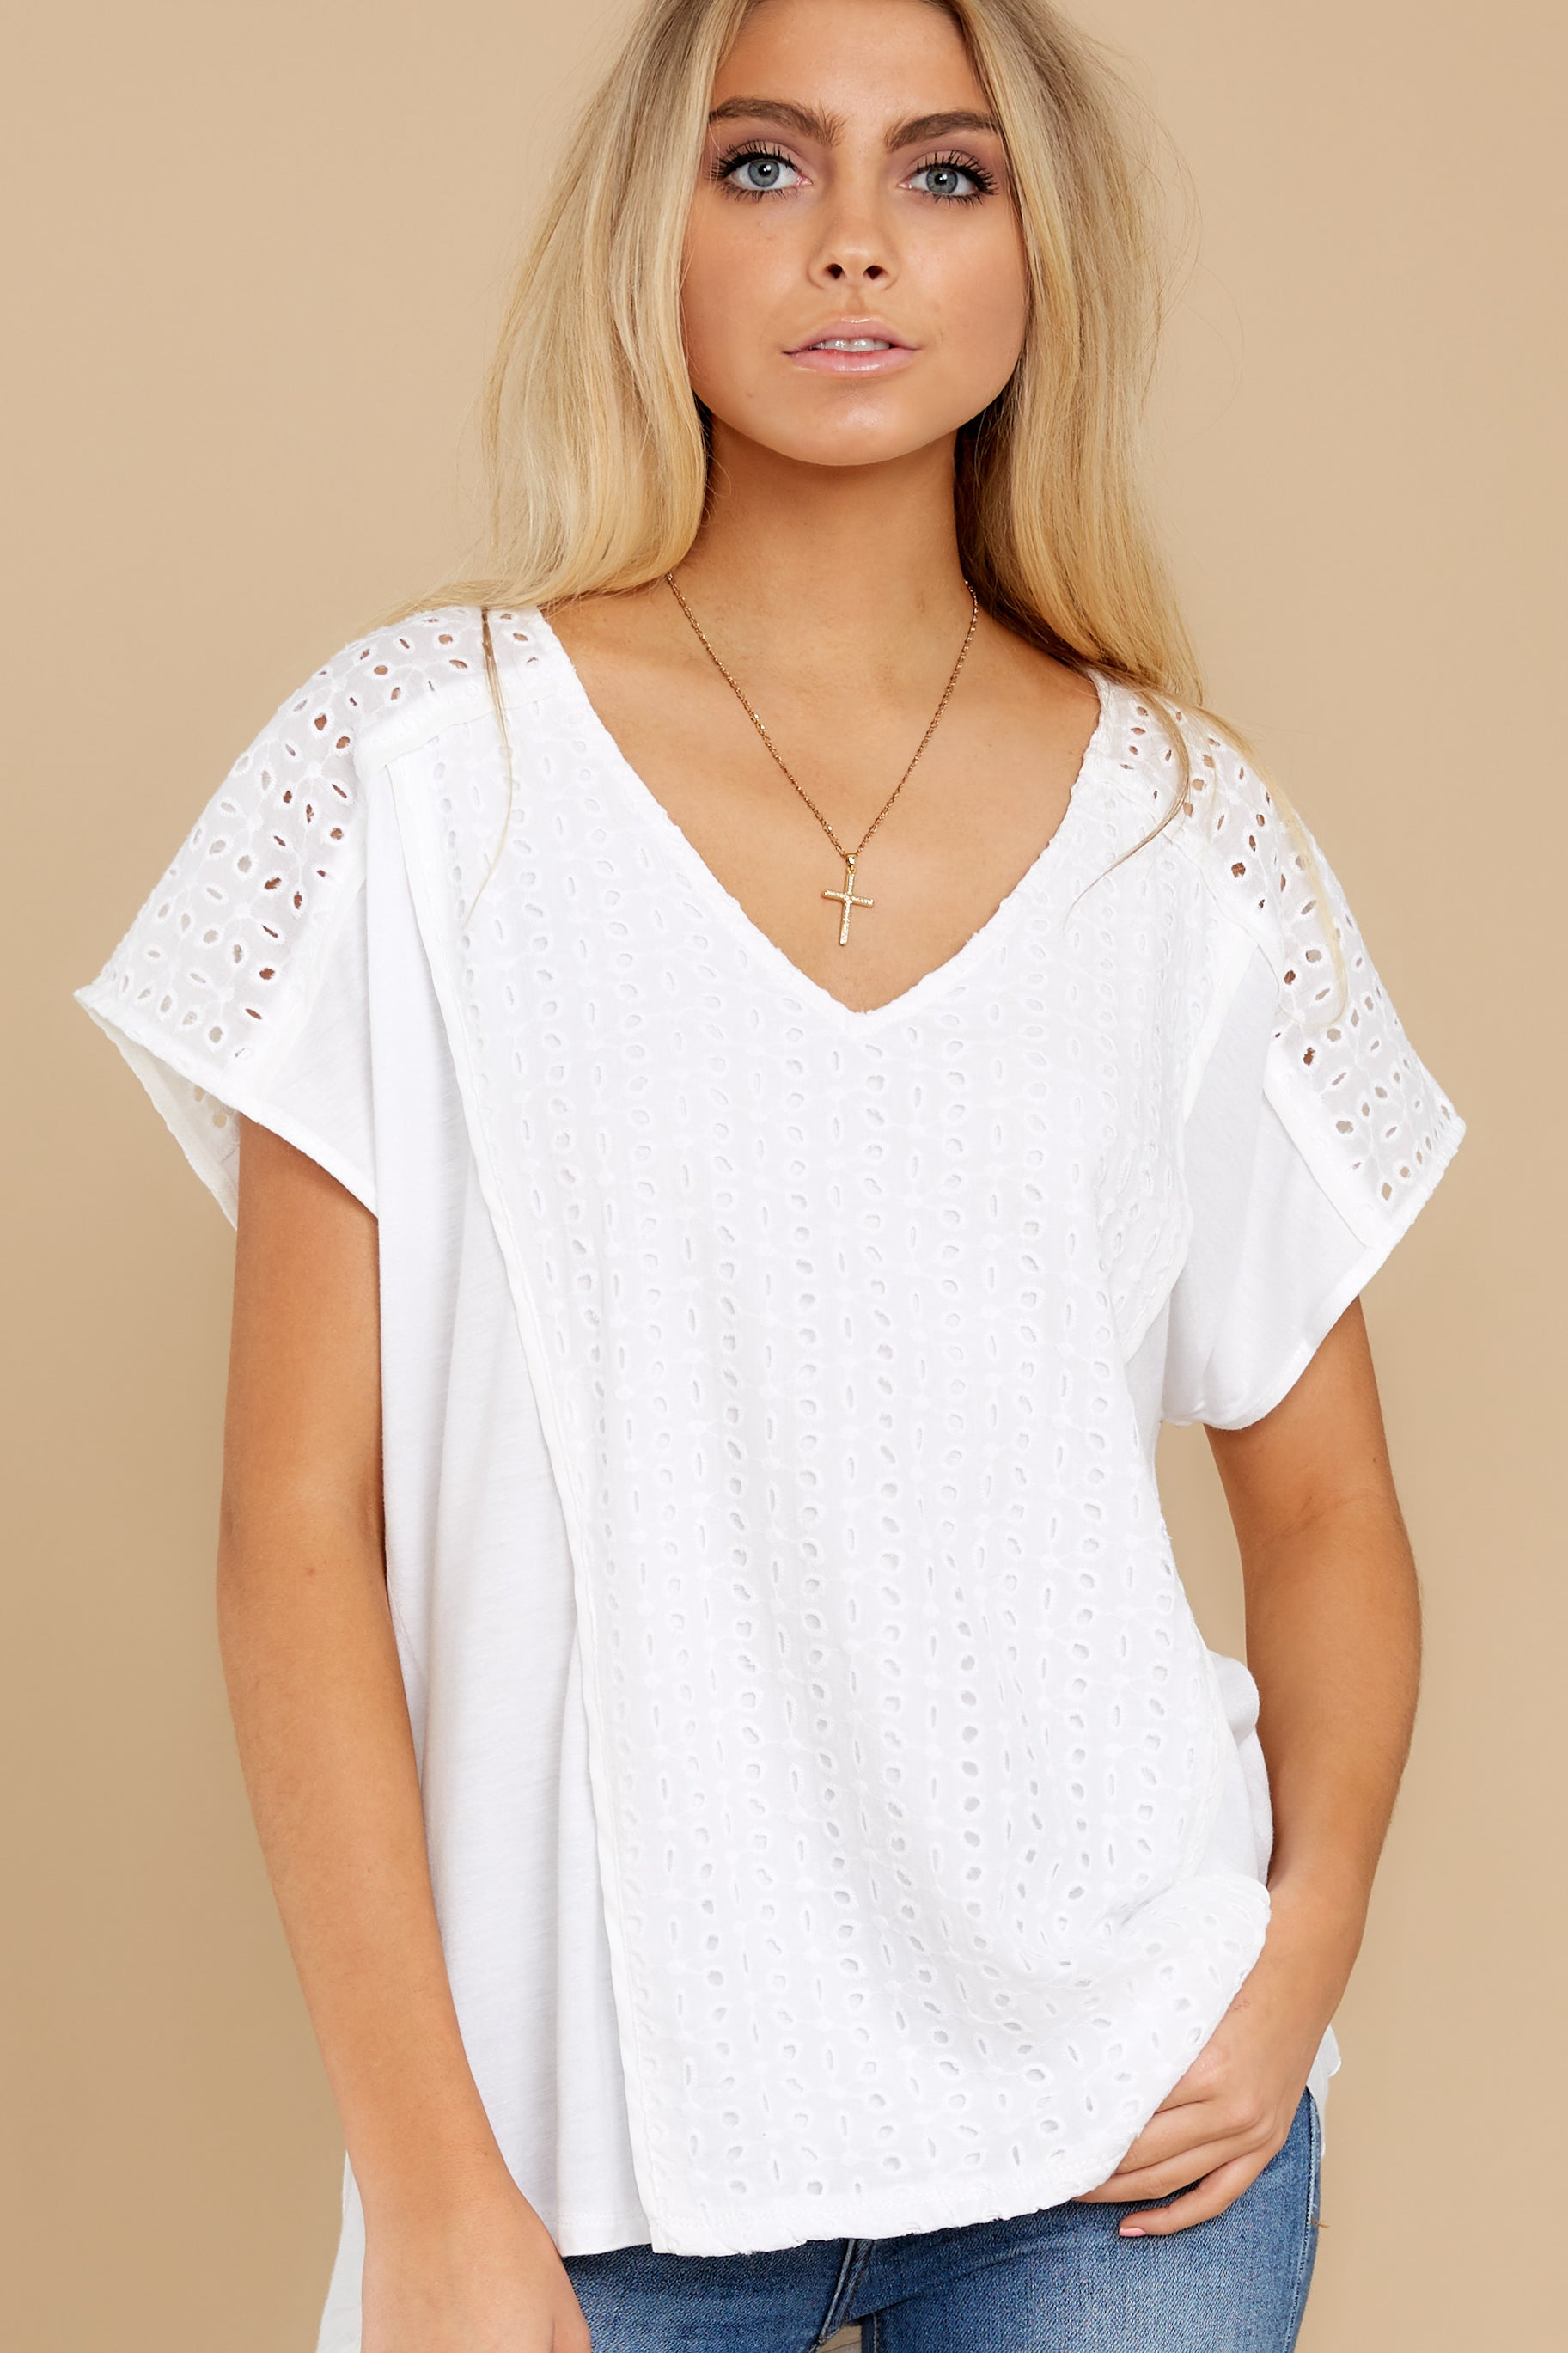 7 All My Time White Eyelet Top at reddress.com